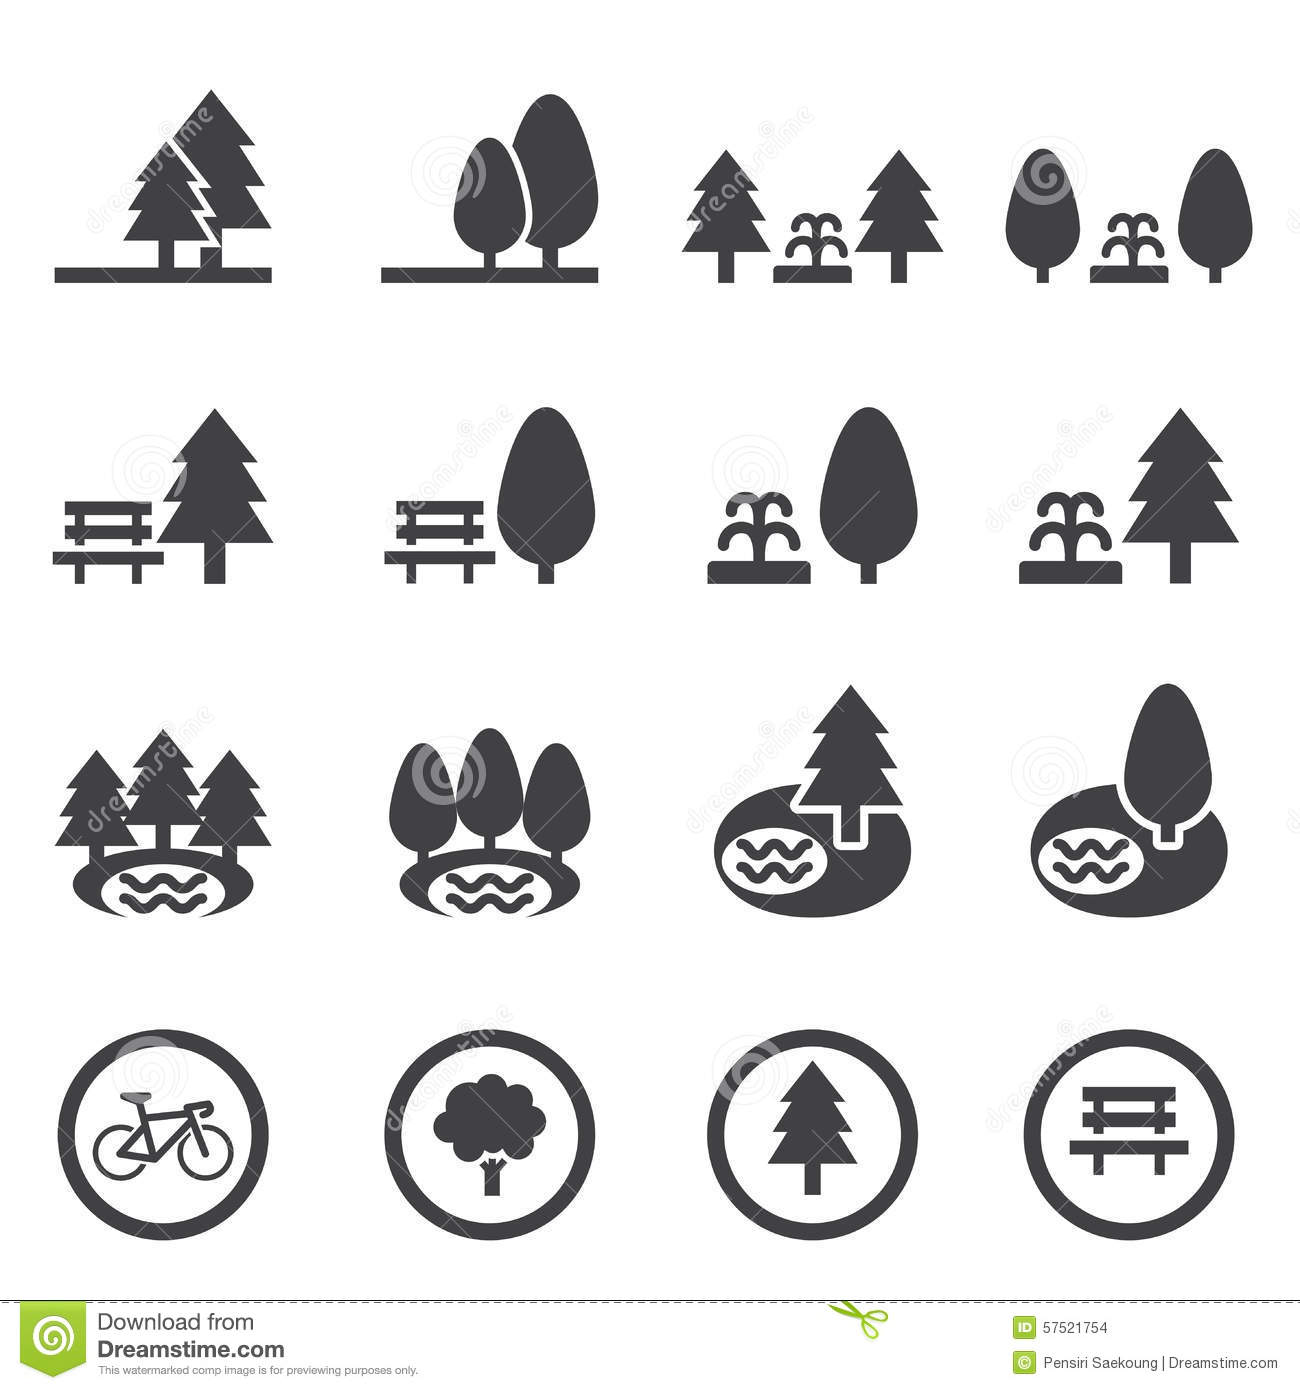 Park icon set stock vector. Illustration of chairs, power ...